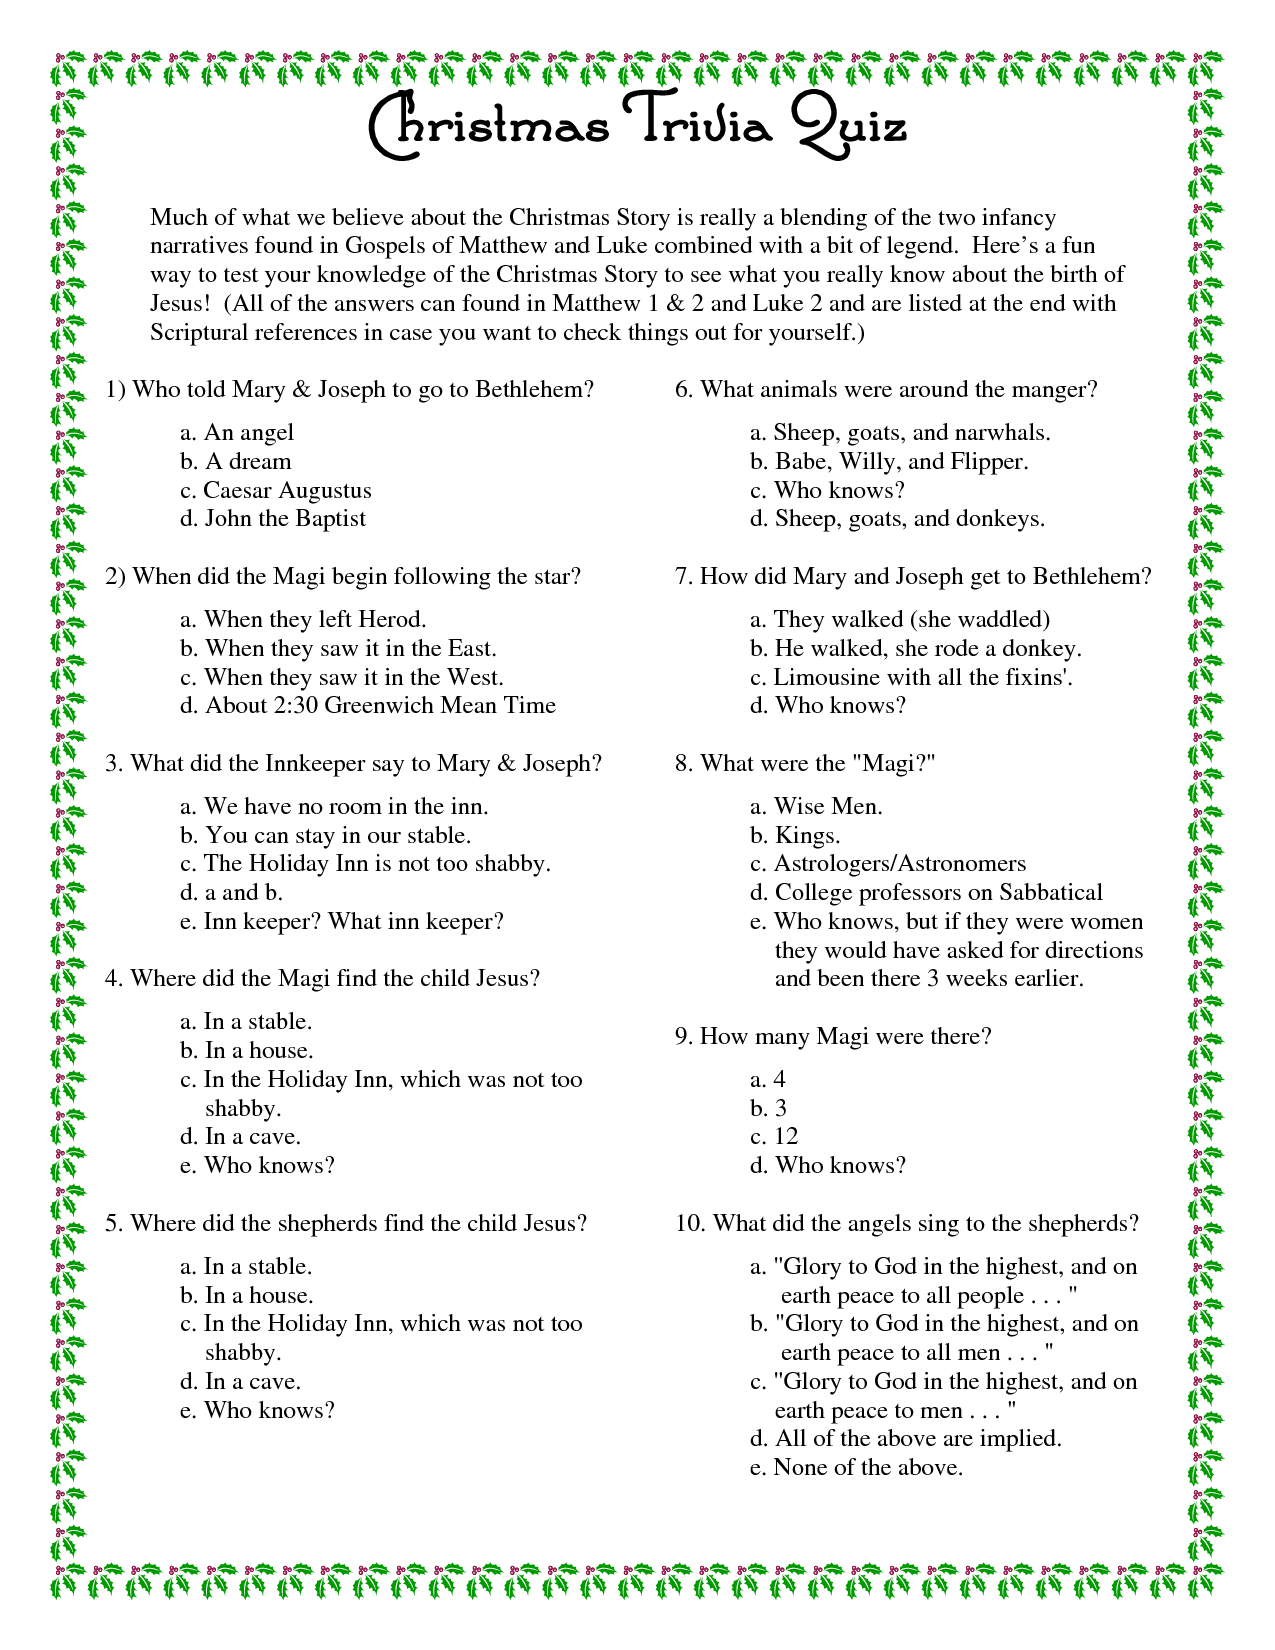 Printable+Christmas+Trivia+Questions+And+Answers | Christmas - Printable Christmas Puzzles And Quizzes